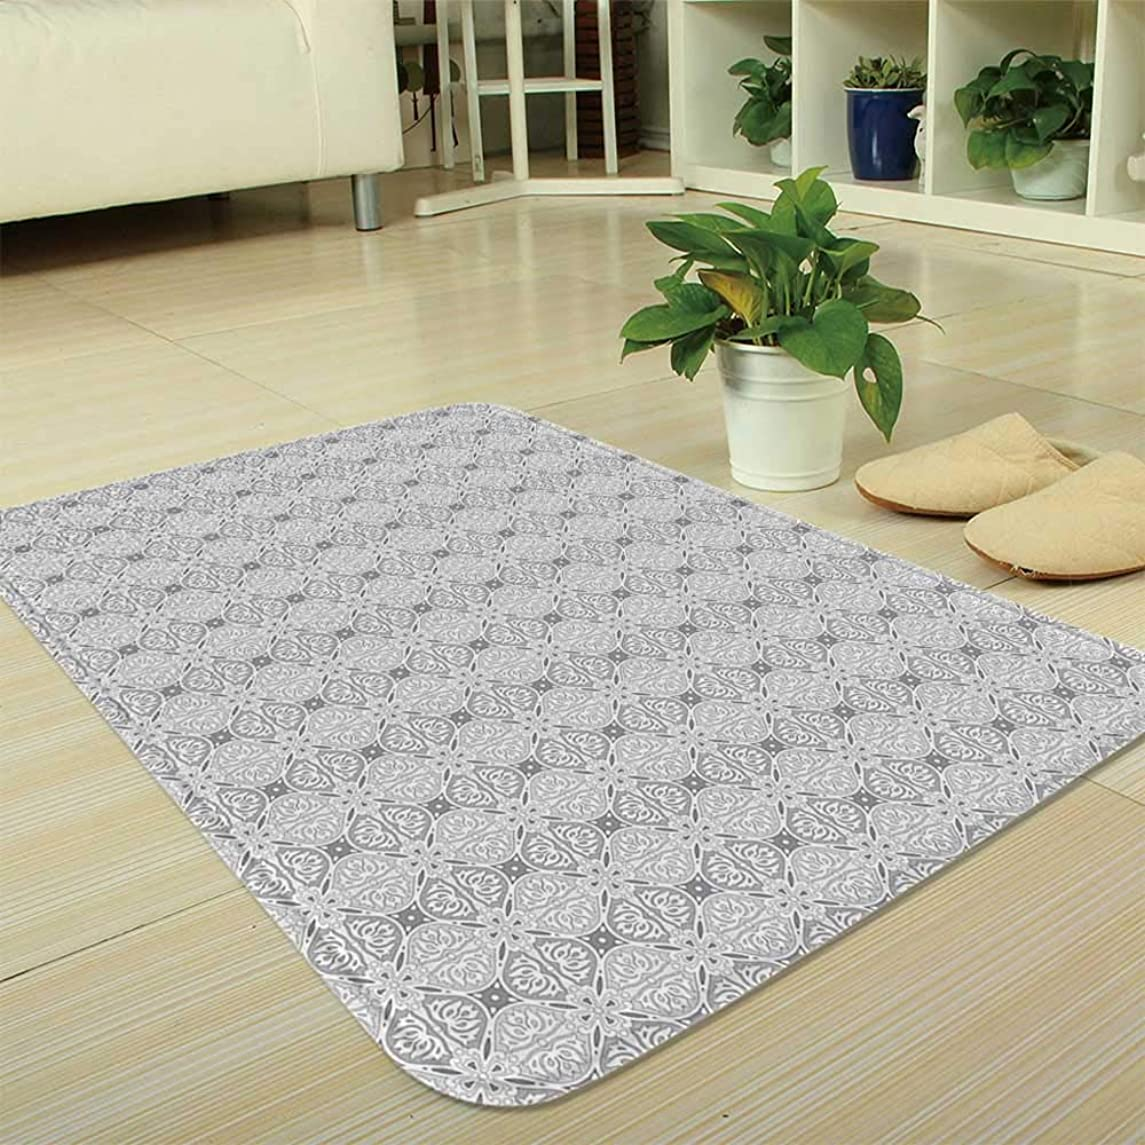 YOLIYANA Bath Mat,Damask,for Dining Room Bathroom Office,35.43